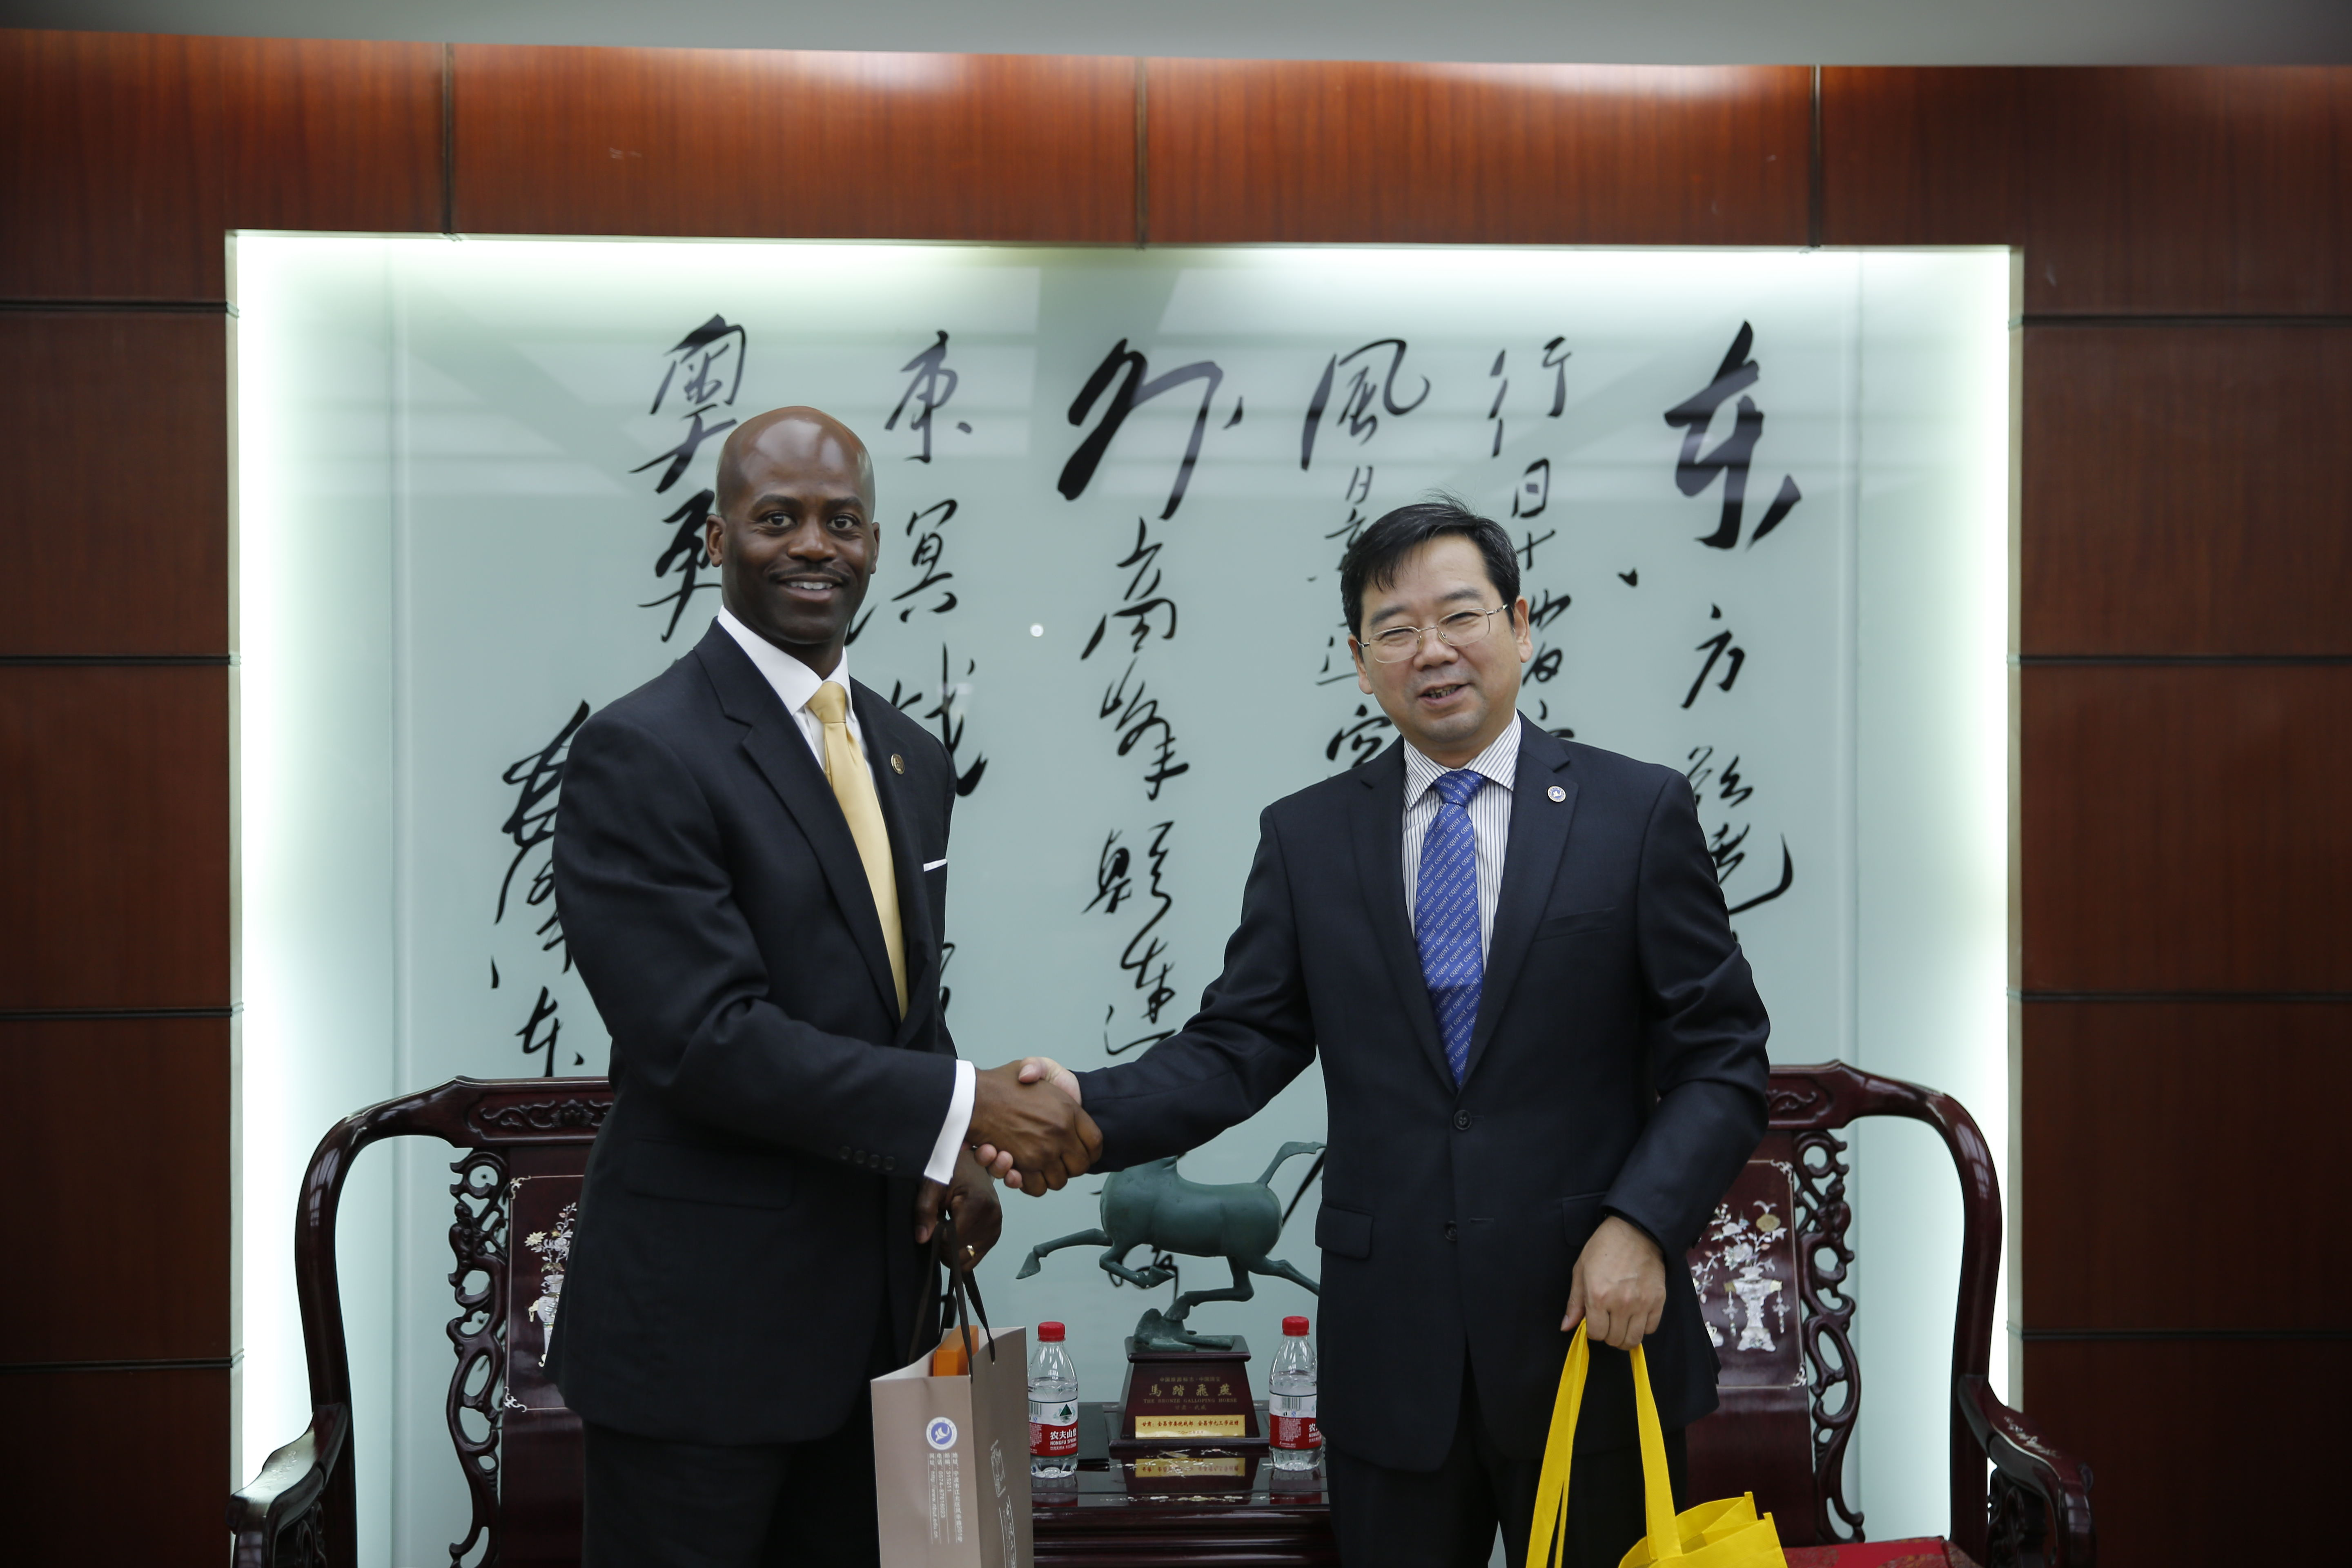 President Jenkins and the President of Ningbo University sign education agreement